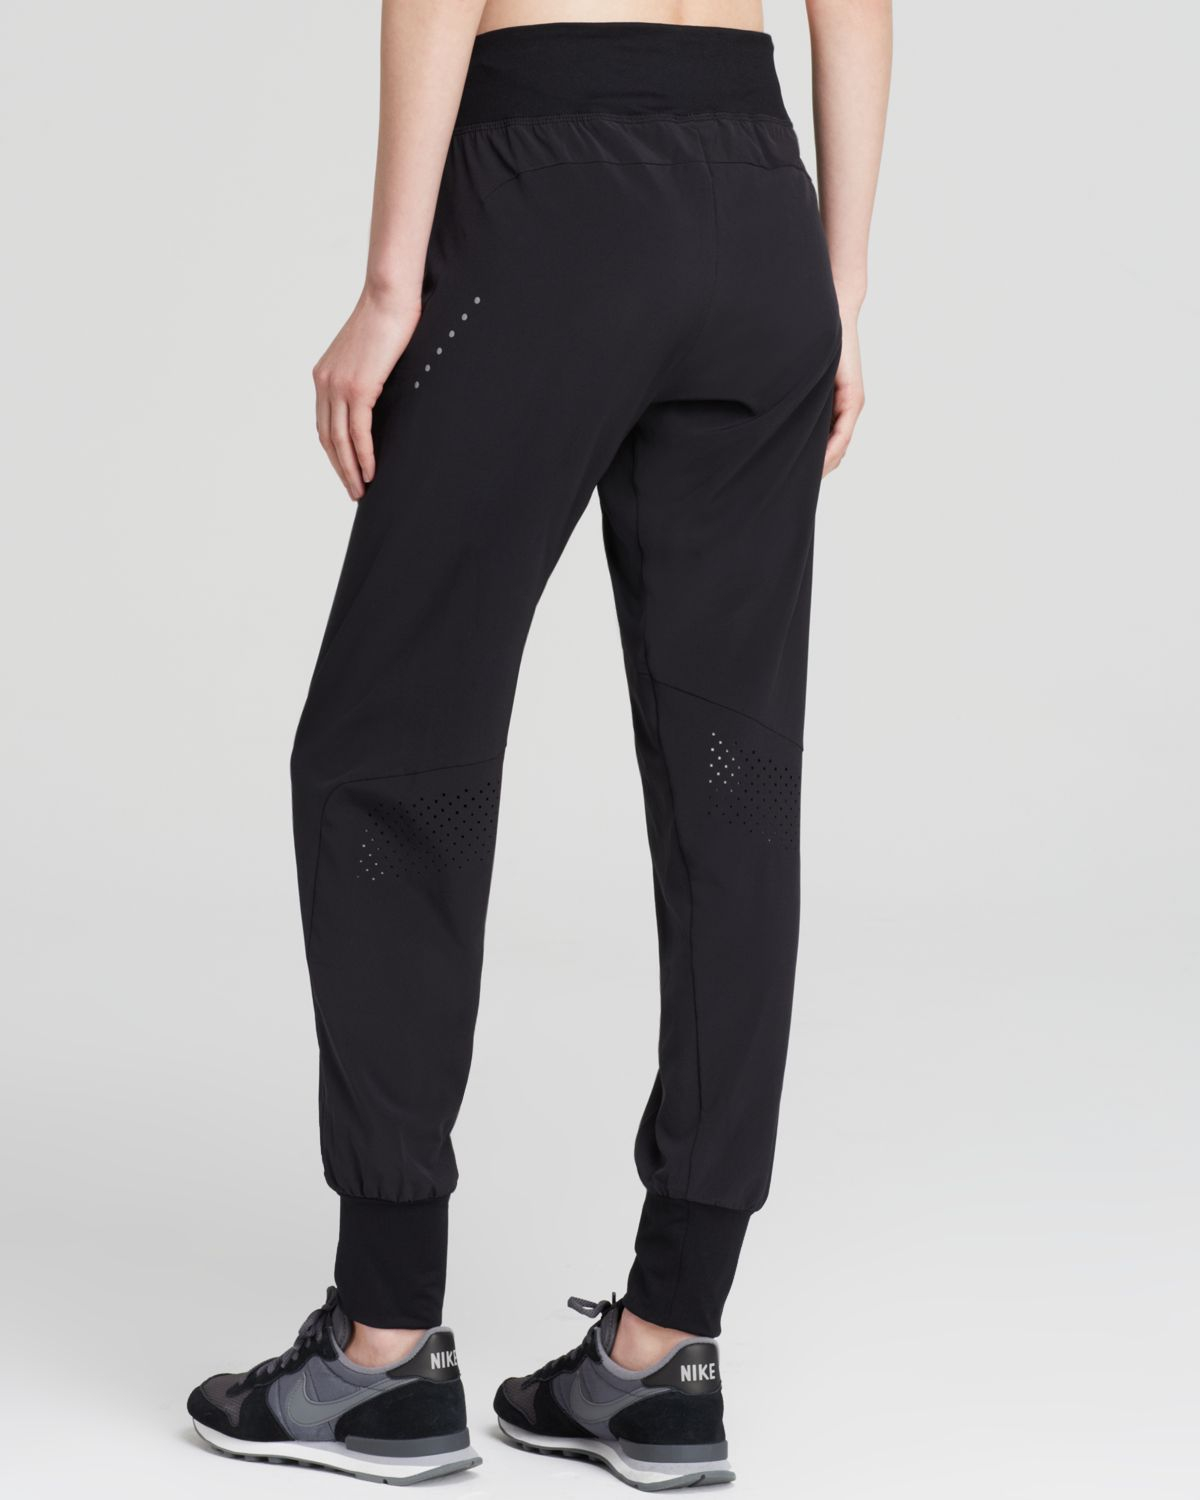 New Nike Pants  Woven Loose In Black  Lyst